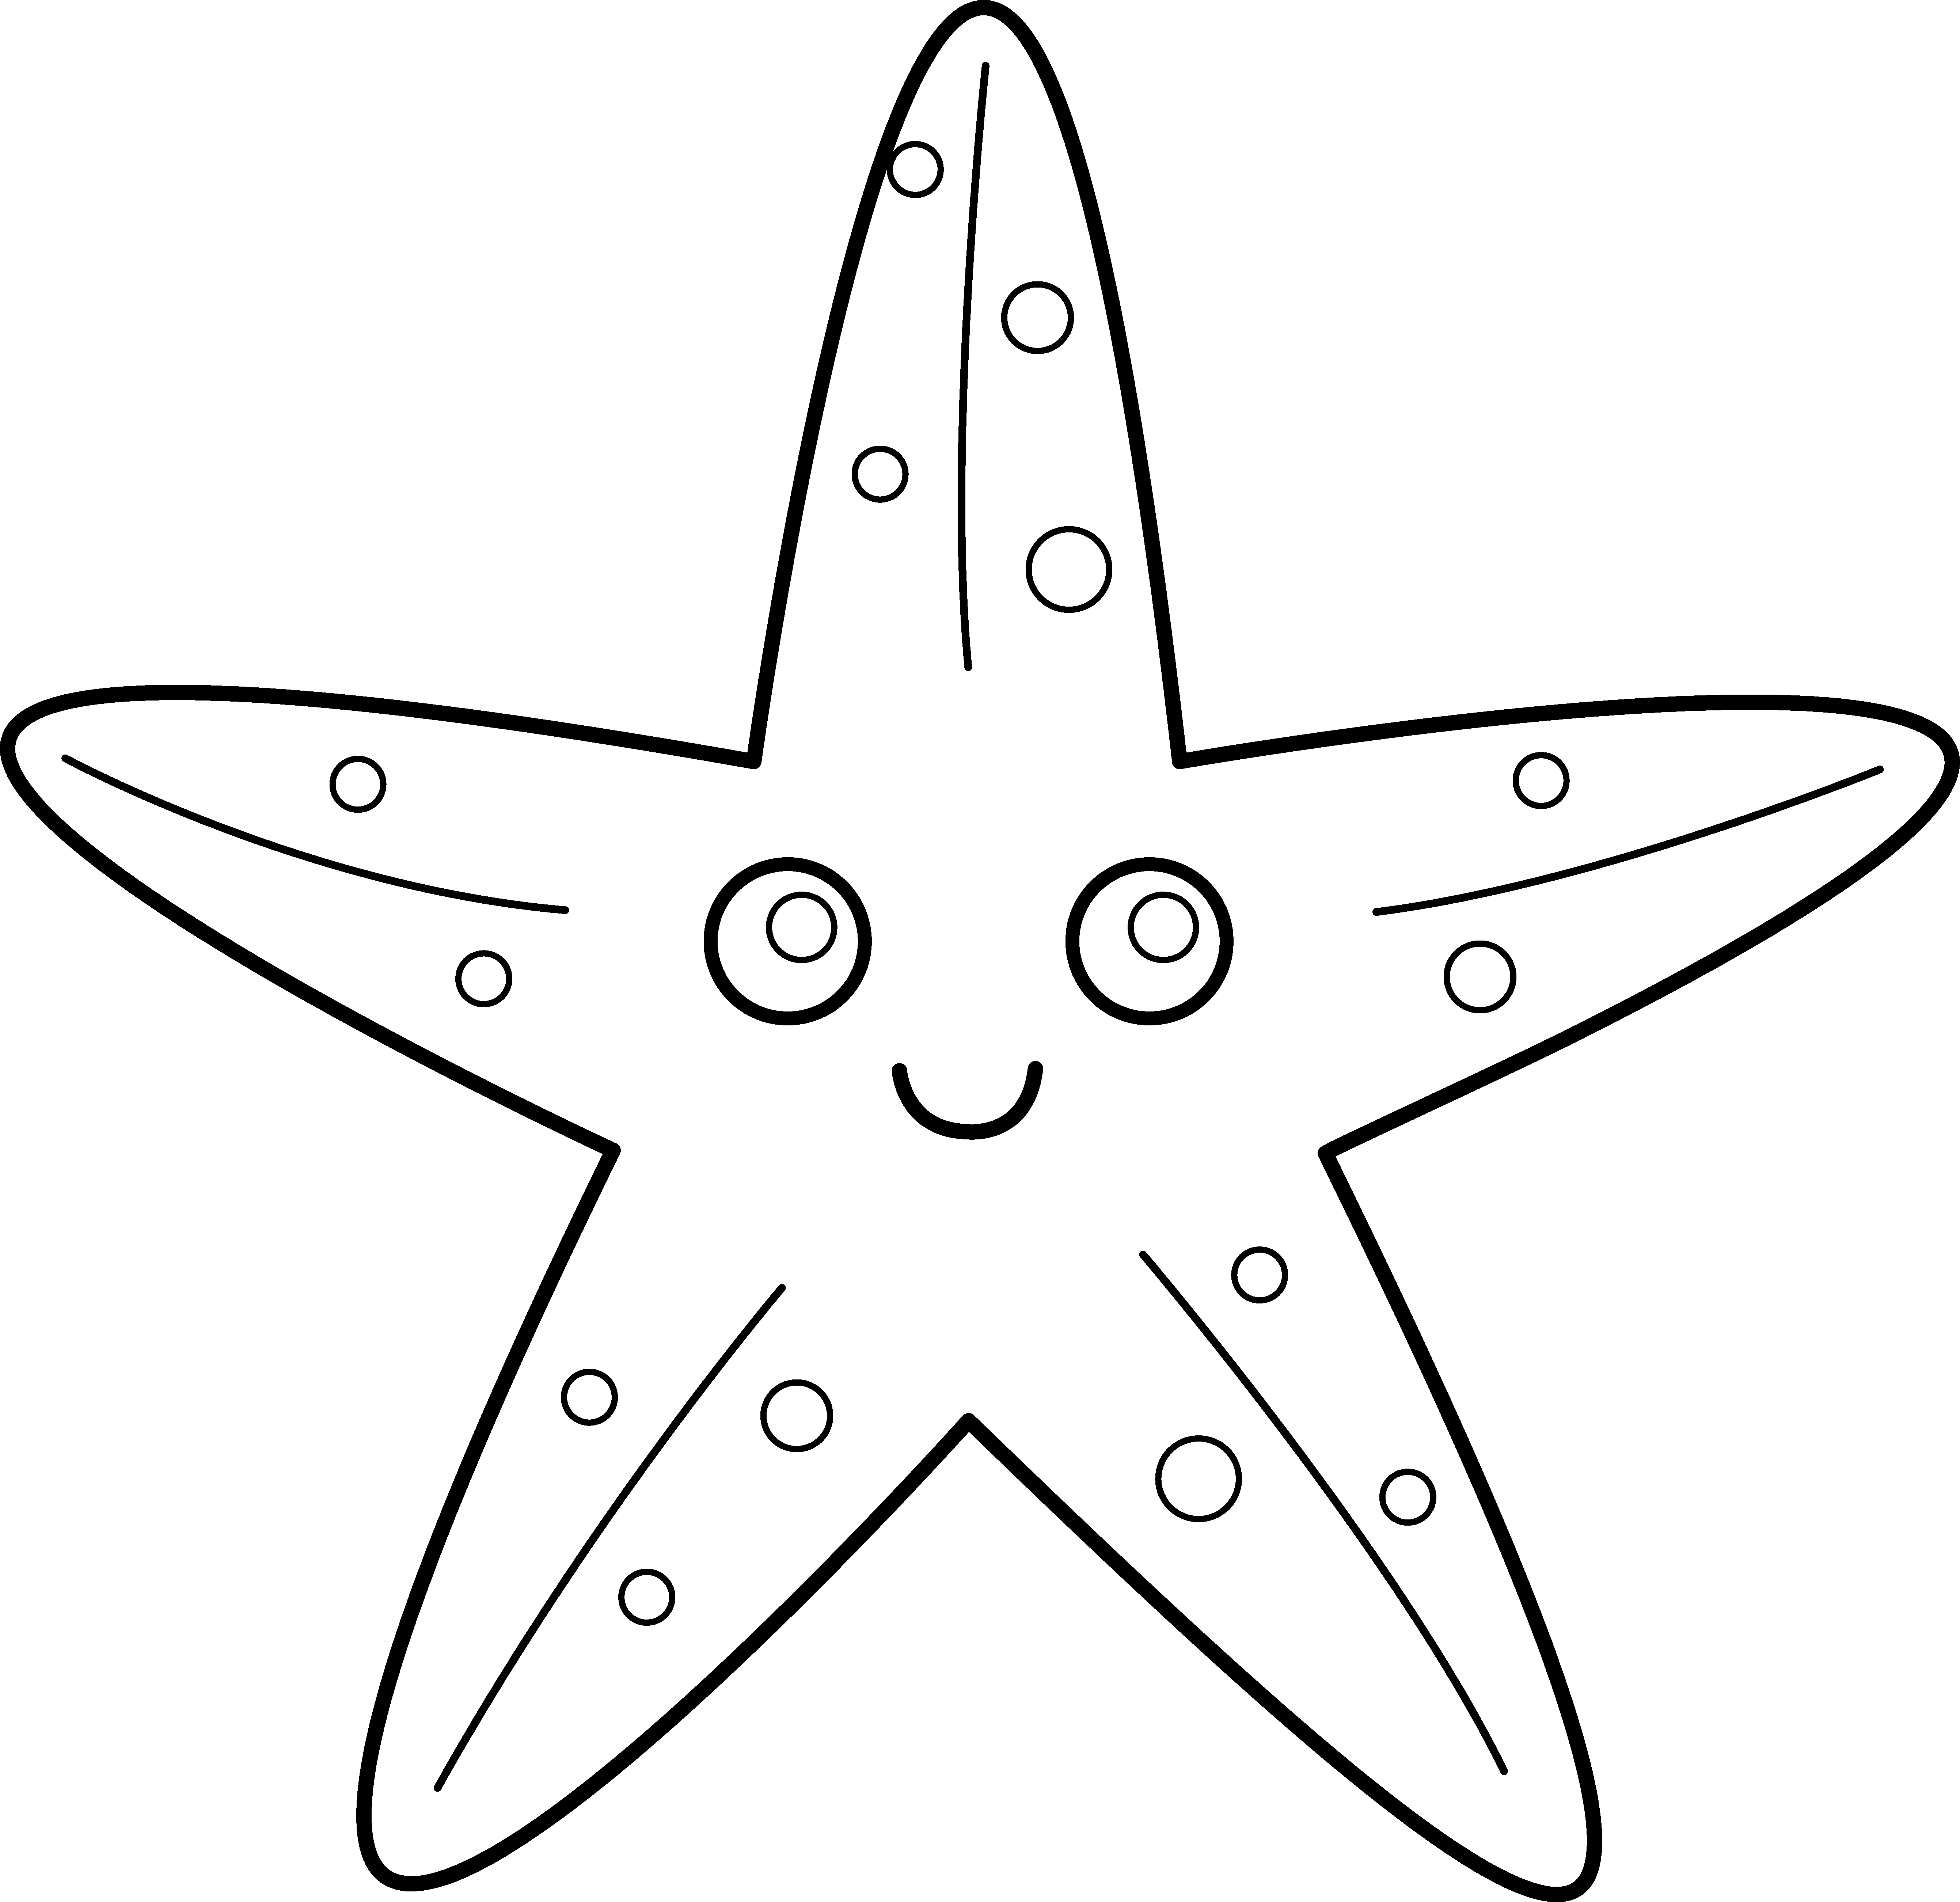 Artic fish black and white clipart jpg stock Starfish for applique | beach camp | Pinterest | Starfish, Sewing ... jpg stock